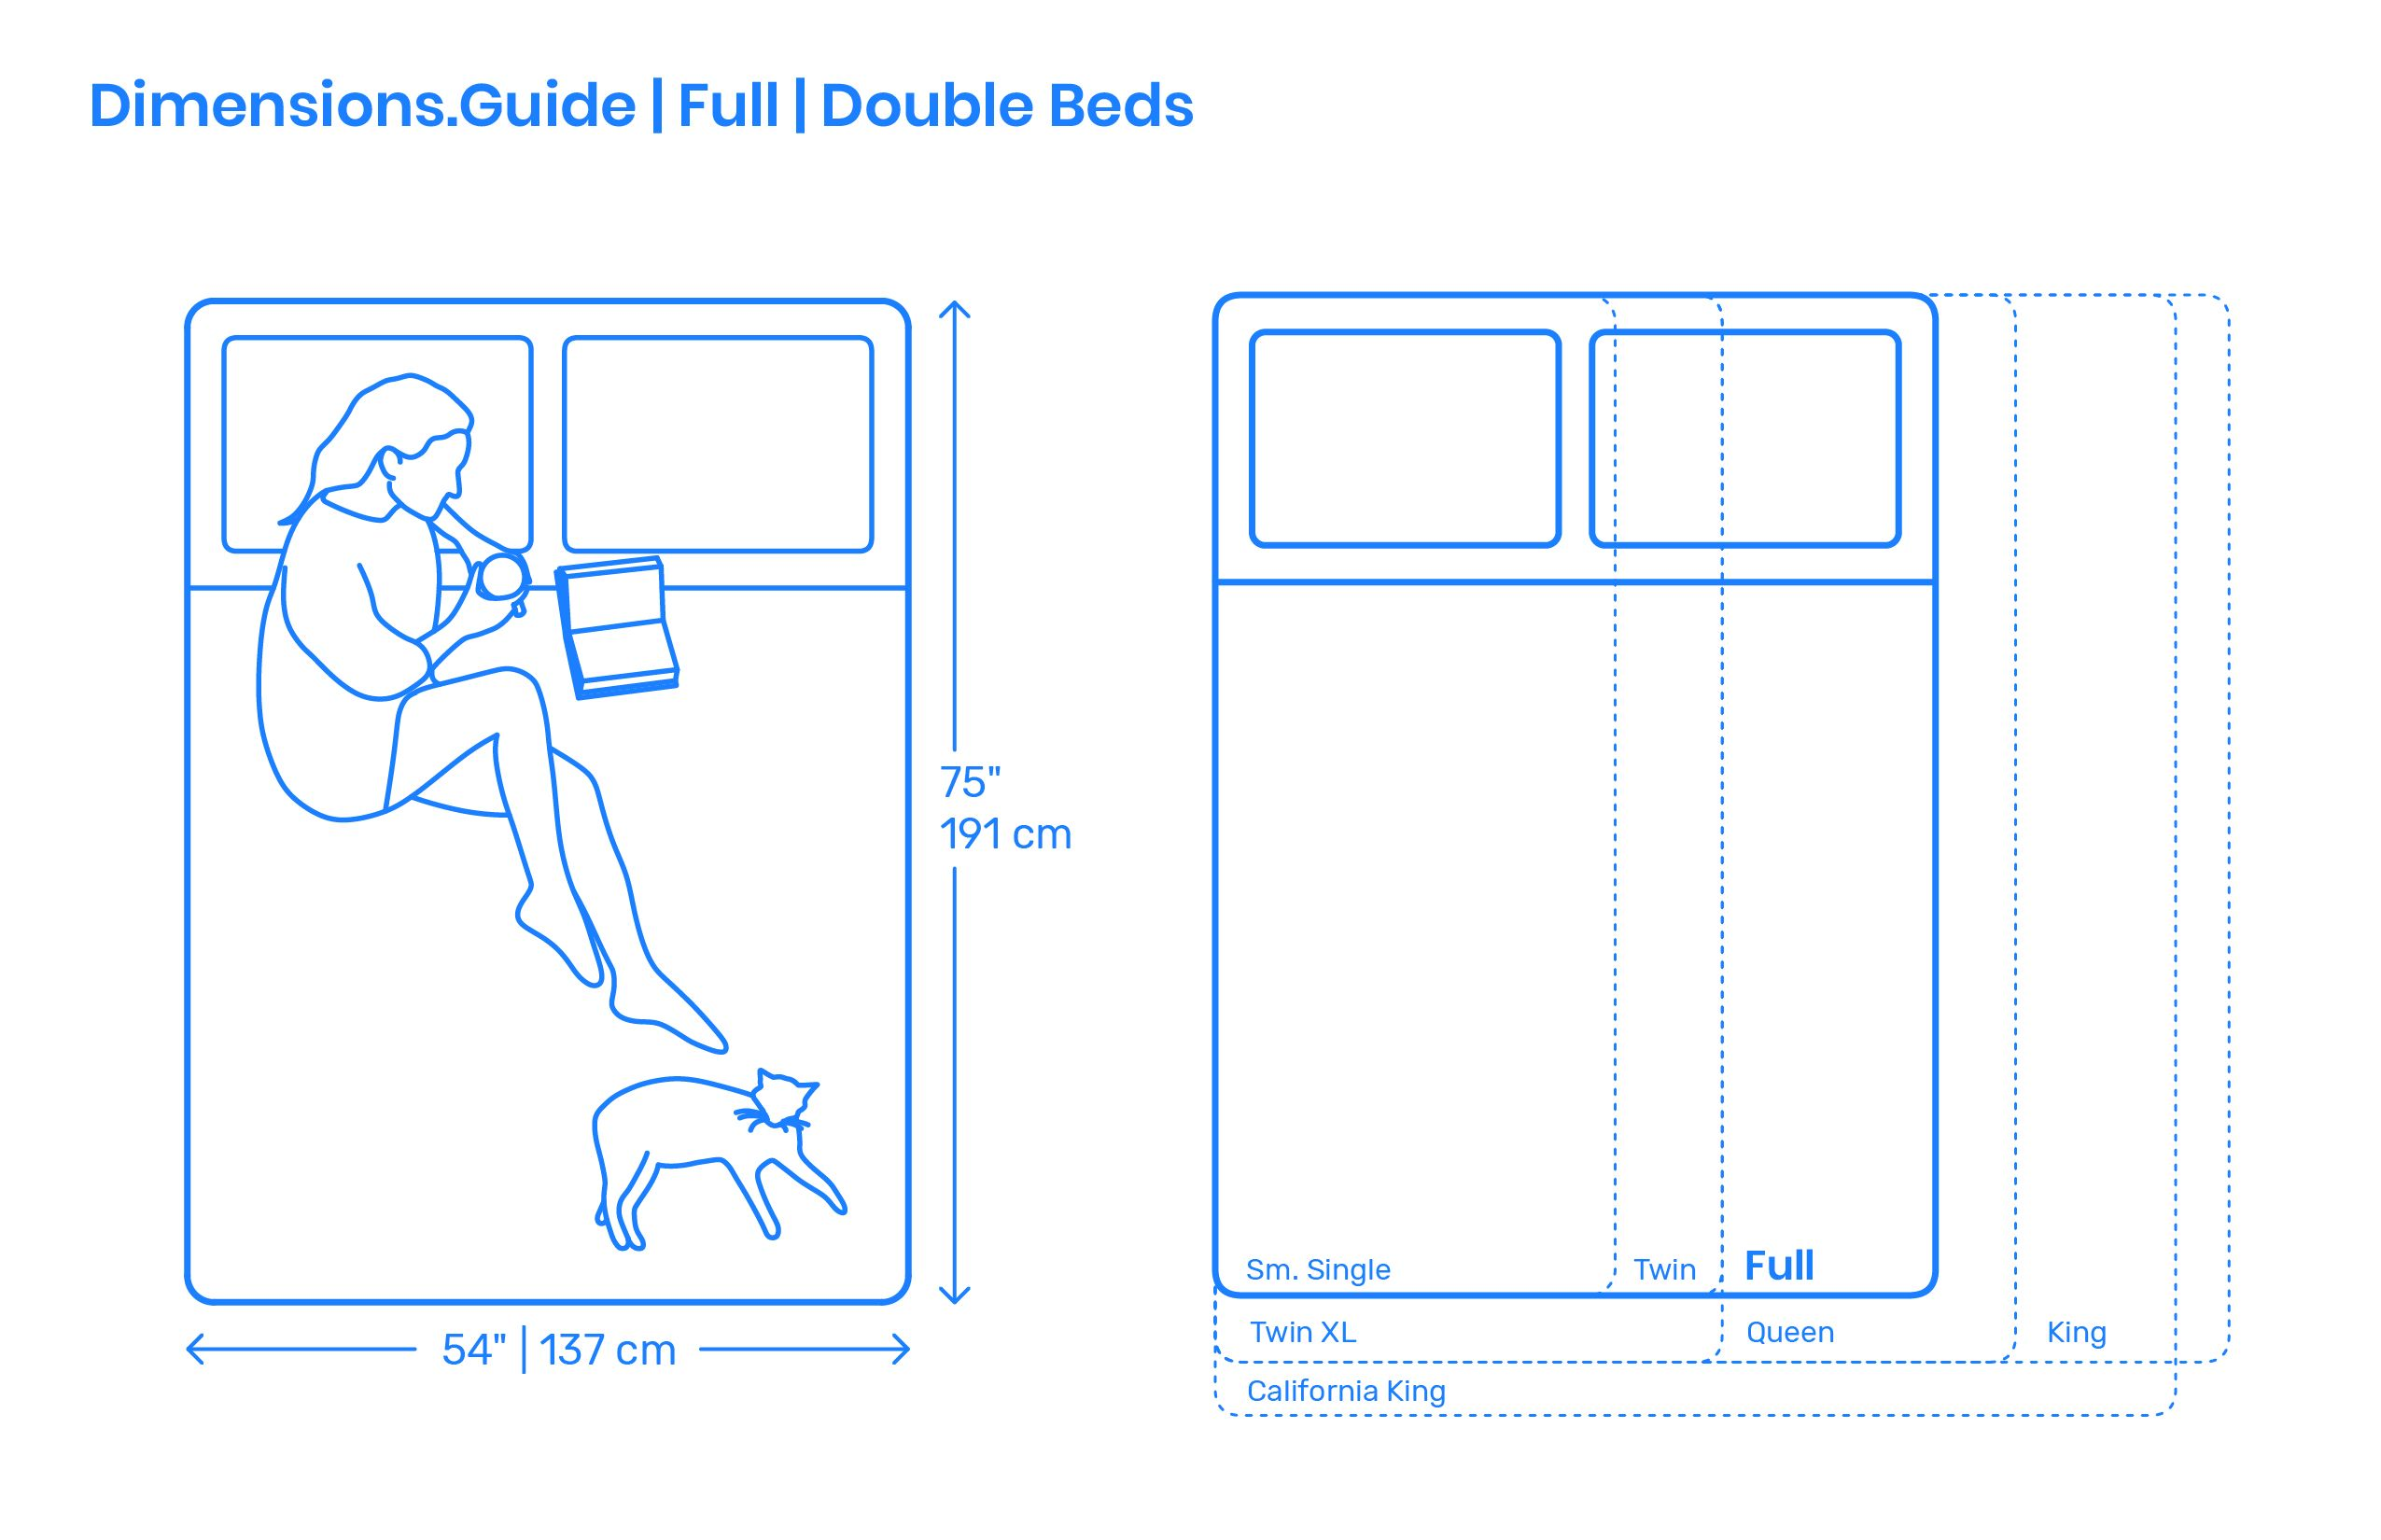 Double Bed Dimensions.Full Beds Also Known As Double Beds Are Sized For Sleeping Two